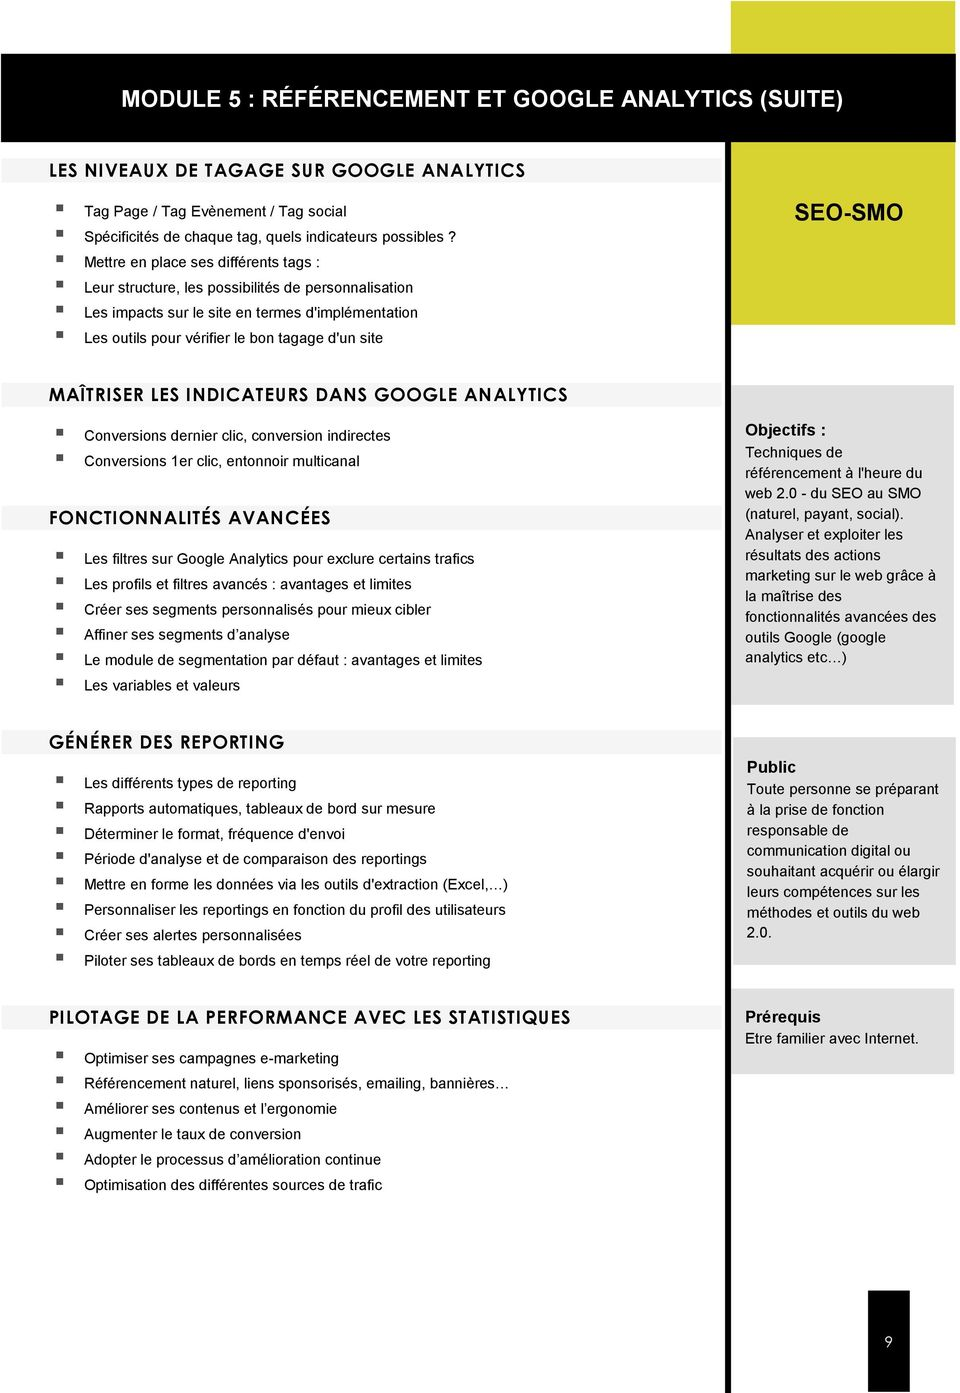 MAÎTRISER LES INDICATEURS DANS GOOGLE ANALYTICS Conversions dernier clic, conversion indirectes Conversions 1er clic, entonnoir multicanal FONCTIONNALITÉS AVANCÉES Les filtres sur Google Analytics